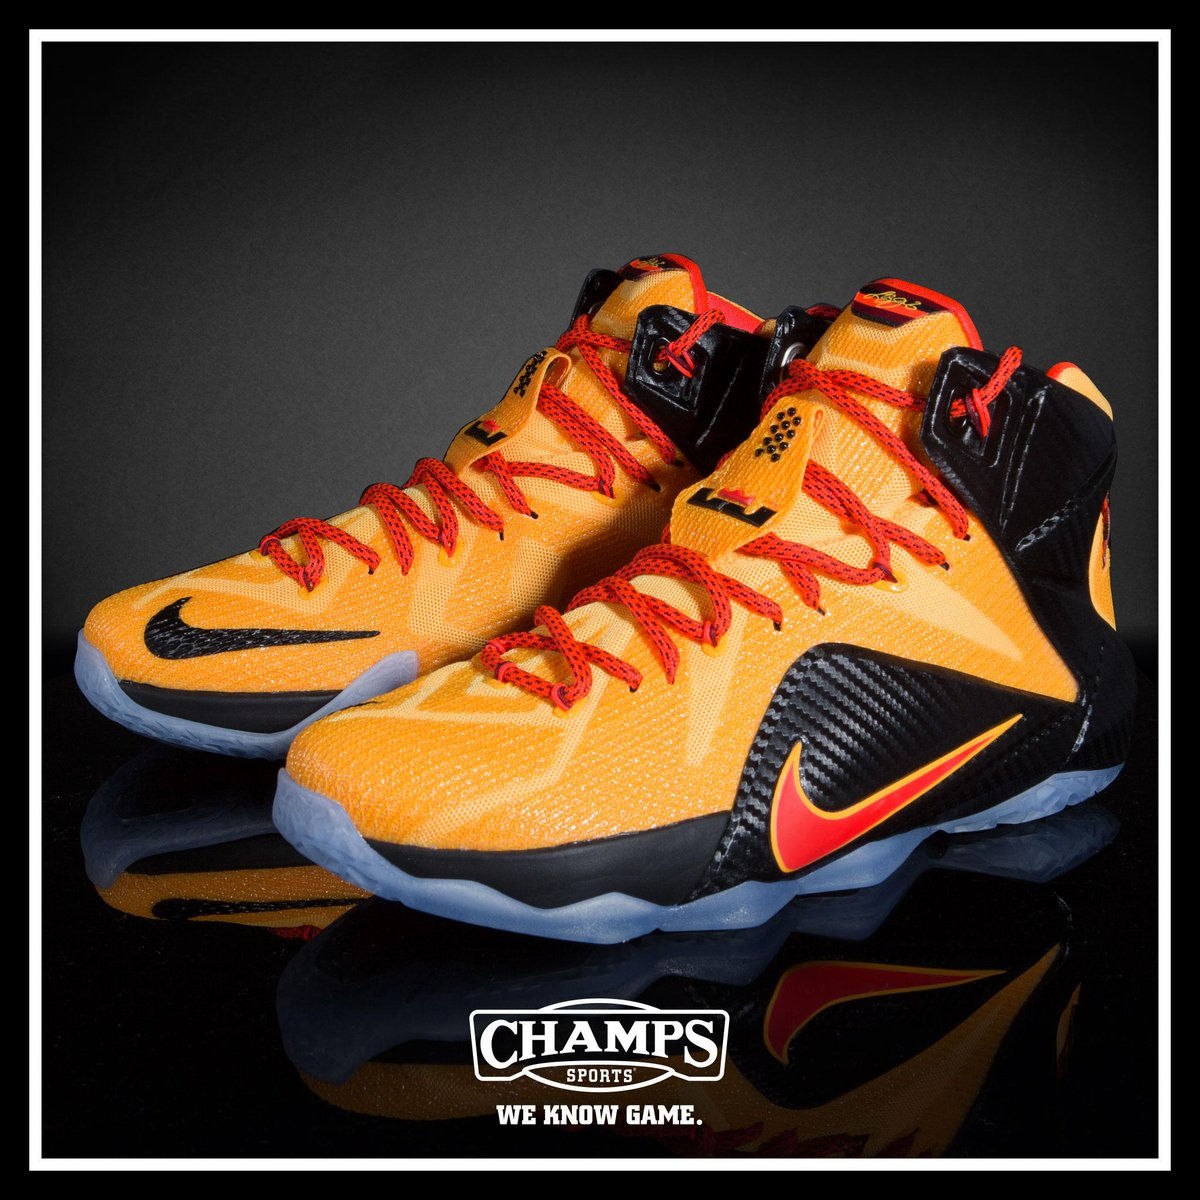 a5ee652d52a cheapest newrelease nike lebron 12 witness is here. buy now http 84095 f5efb